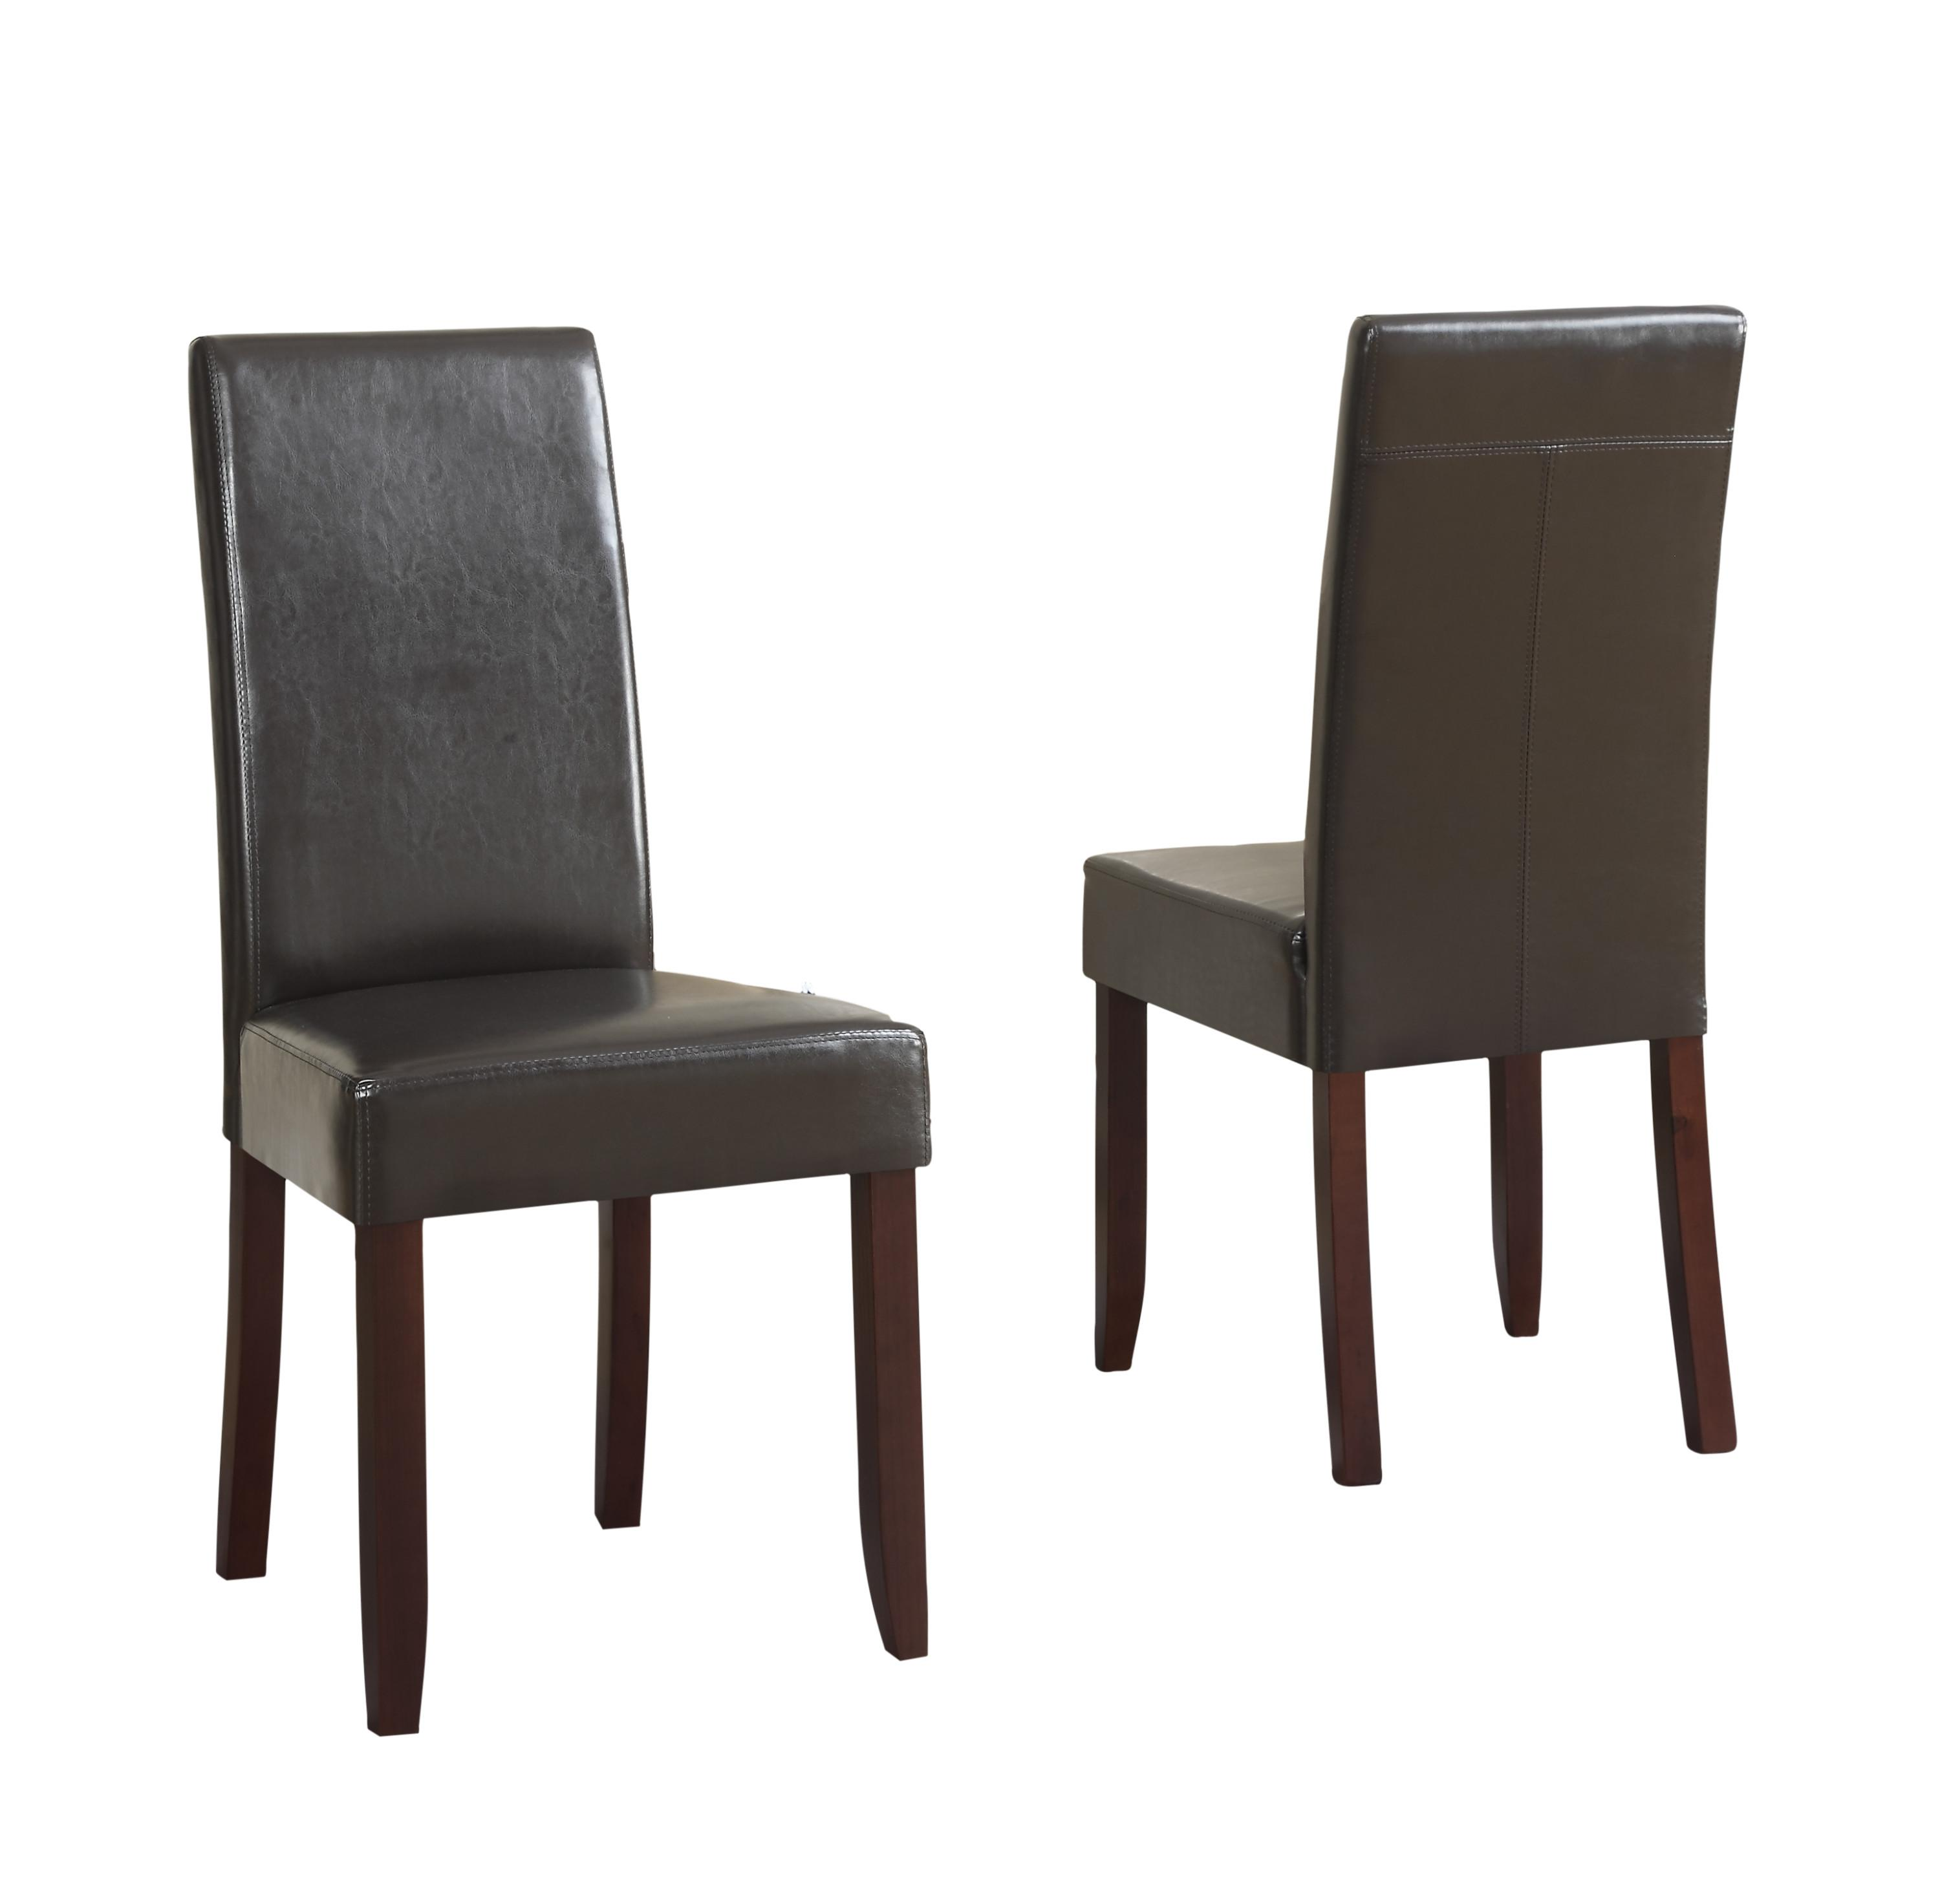 leather parson dining chairs dark brown set of 2 kitchen dining